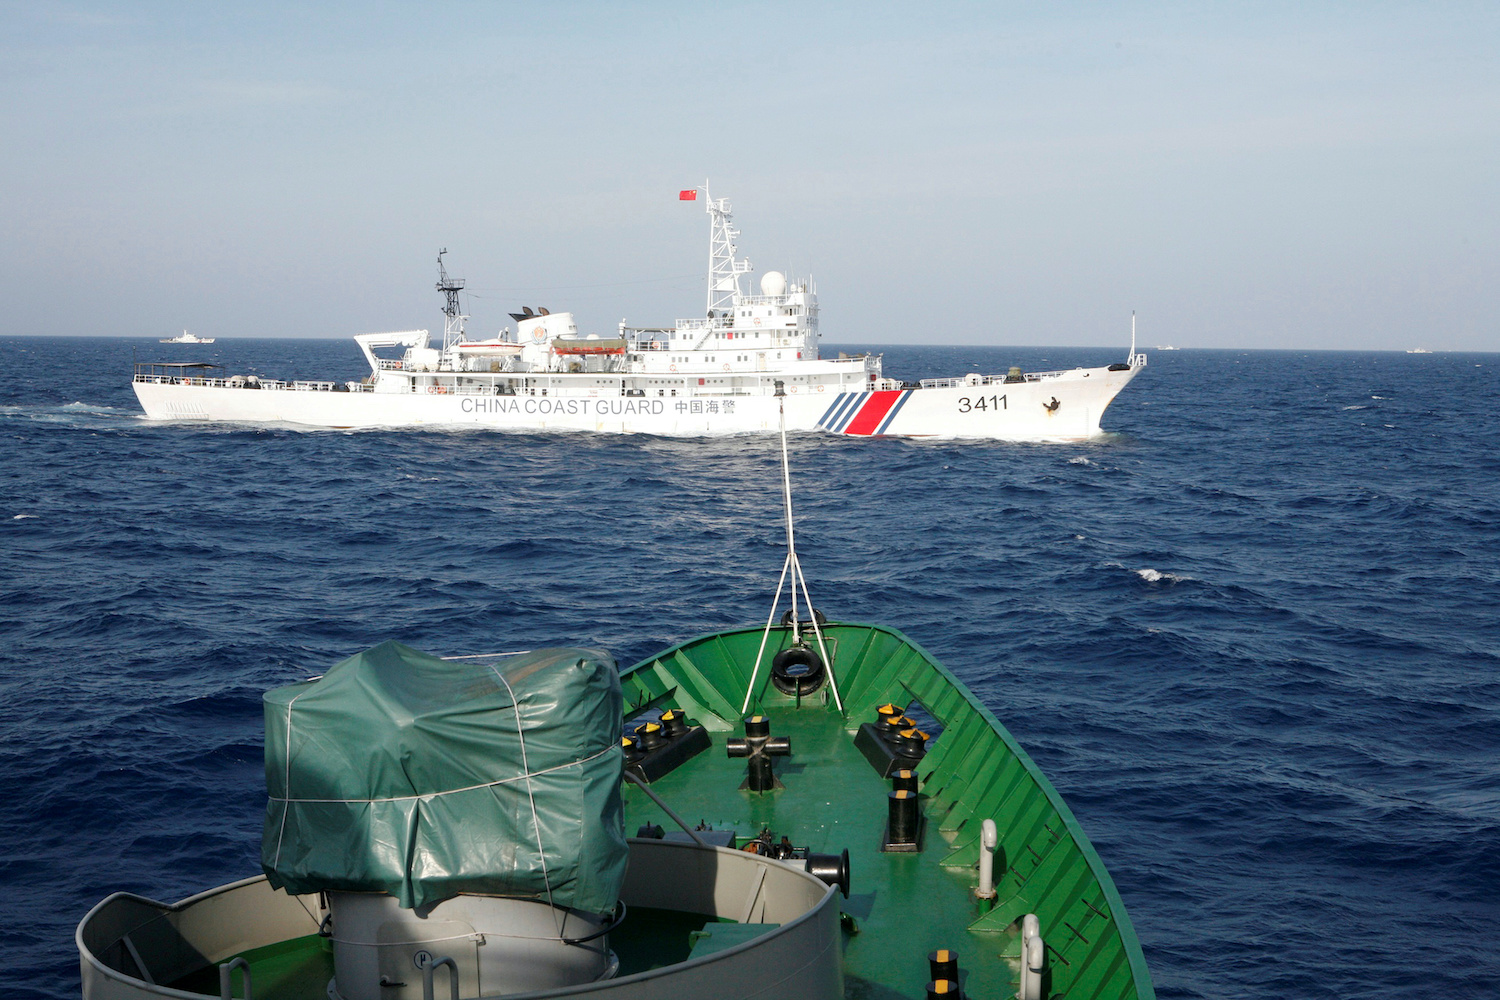 New Law Allows China's Coast Guard to Fire on Foreign Vessels